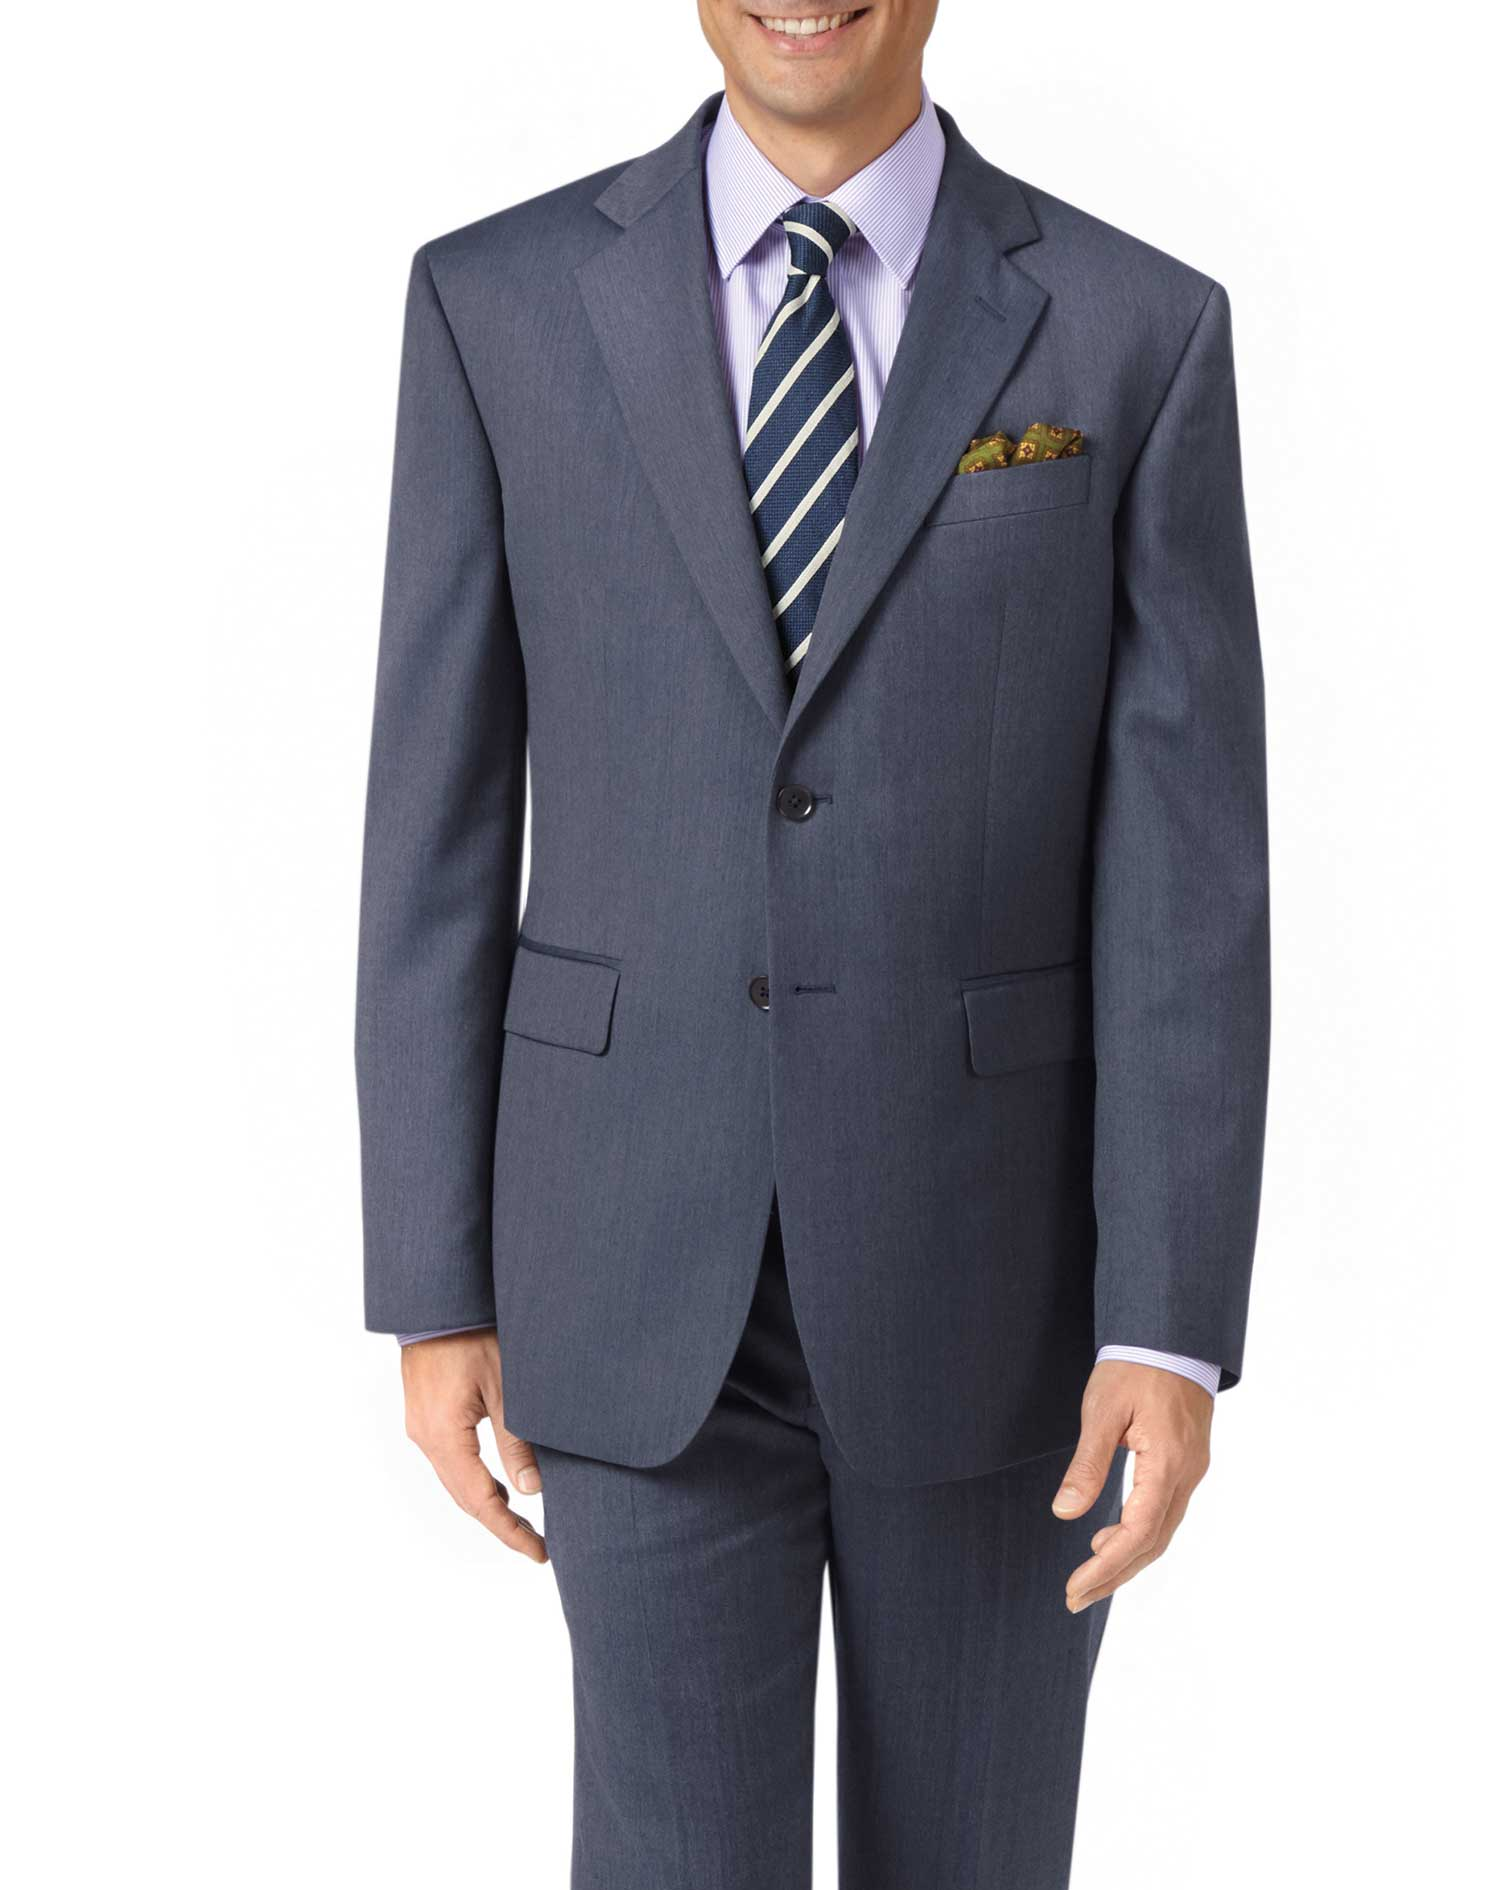 Light Blue Classic Fit Twill Business Suit Wool Jacket Size 40 Short by Charles Tyrwhitt